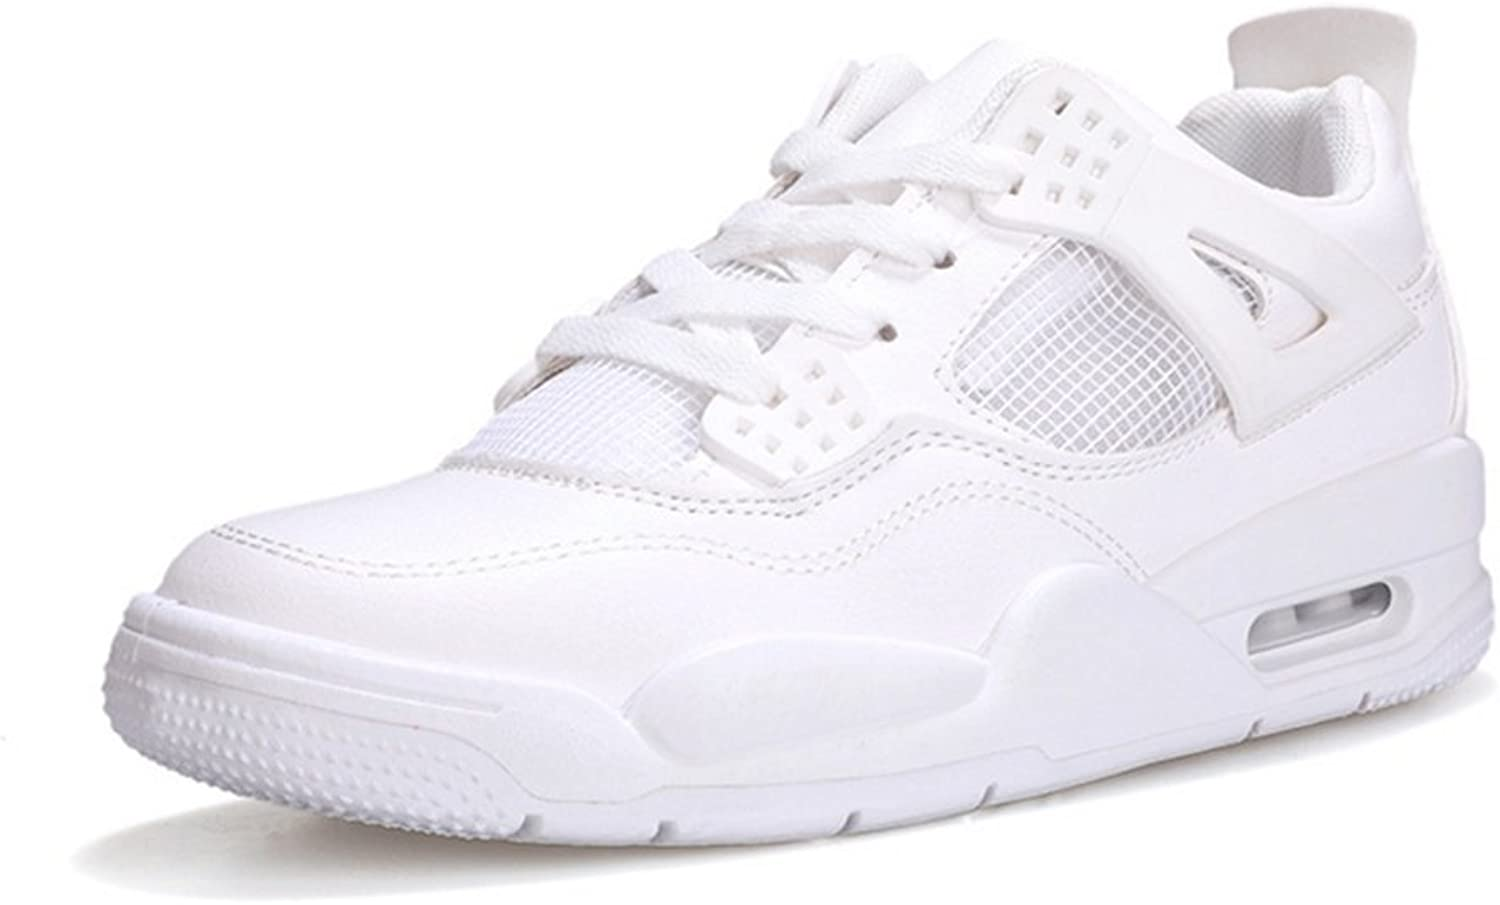 RENMEN Spring summer sports shoes men's thick-soled breathable white shoes air cushion casual shoes running men's shoes 39-43, white